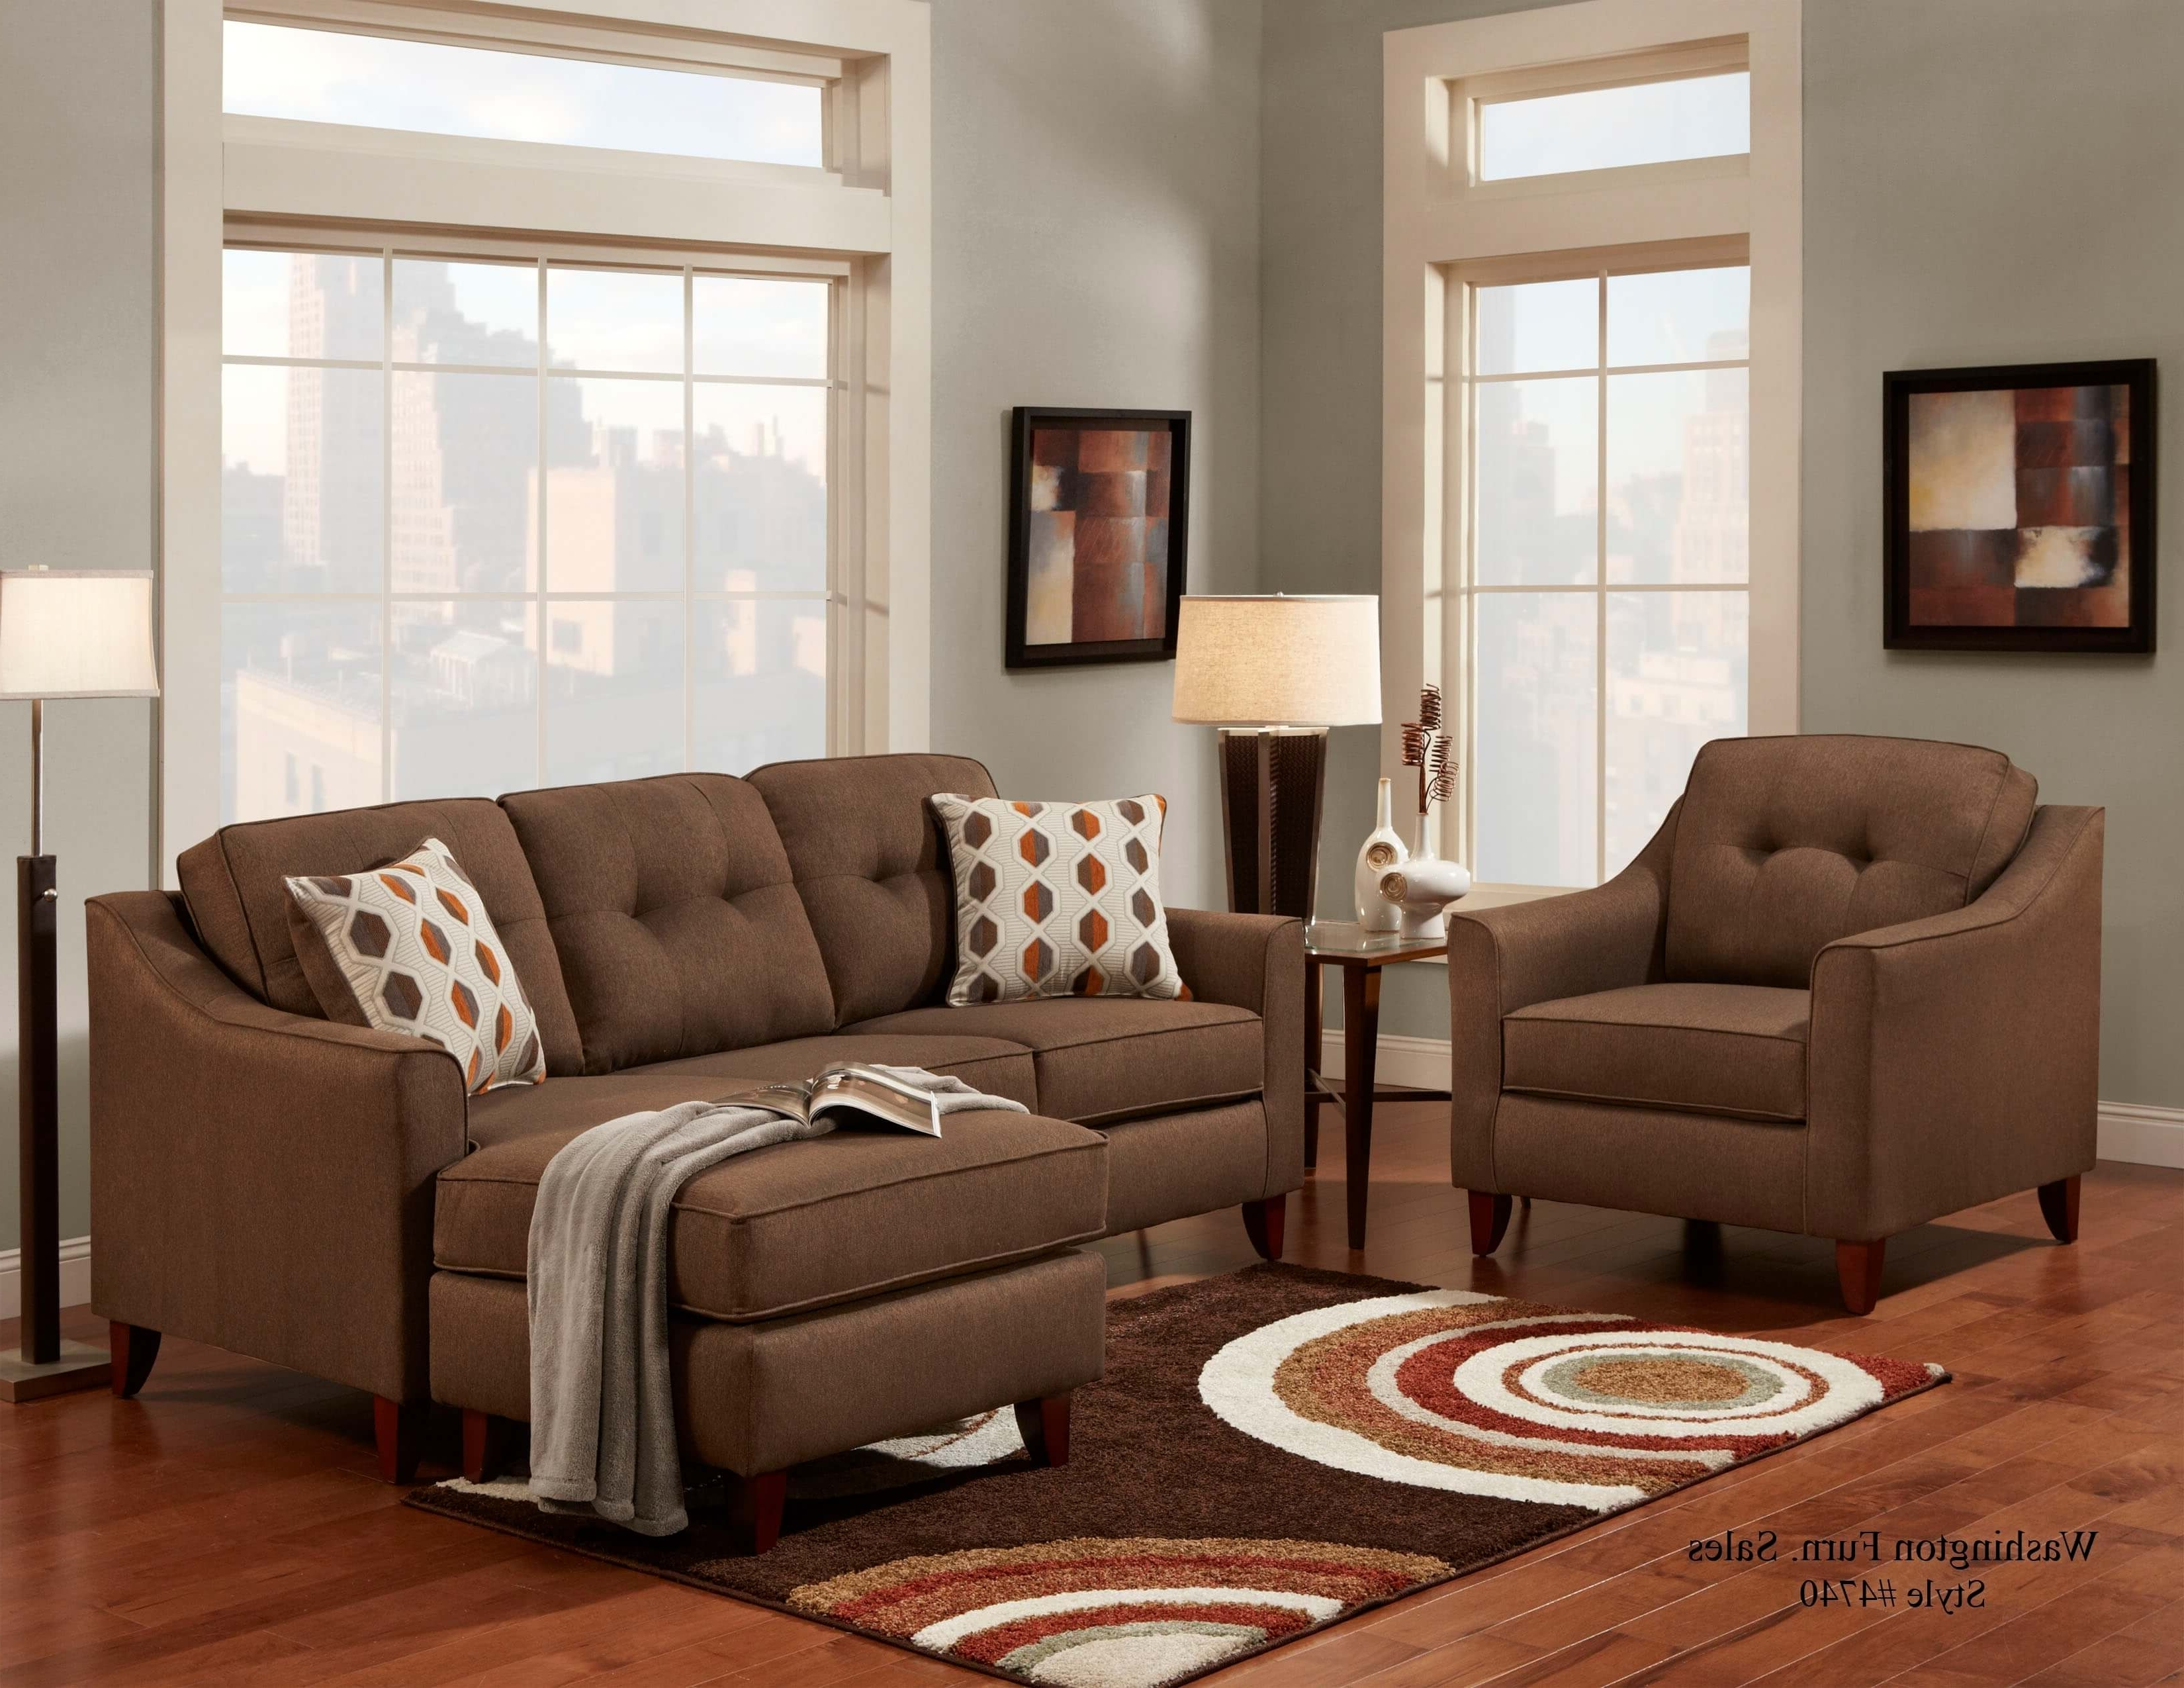 Sectional Sofa Sets For Favorite Chocolate Sectional Sofas (View 15 of 20)